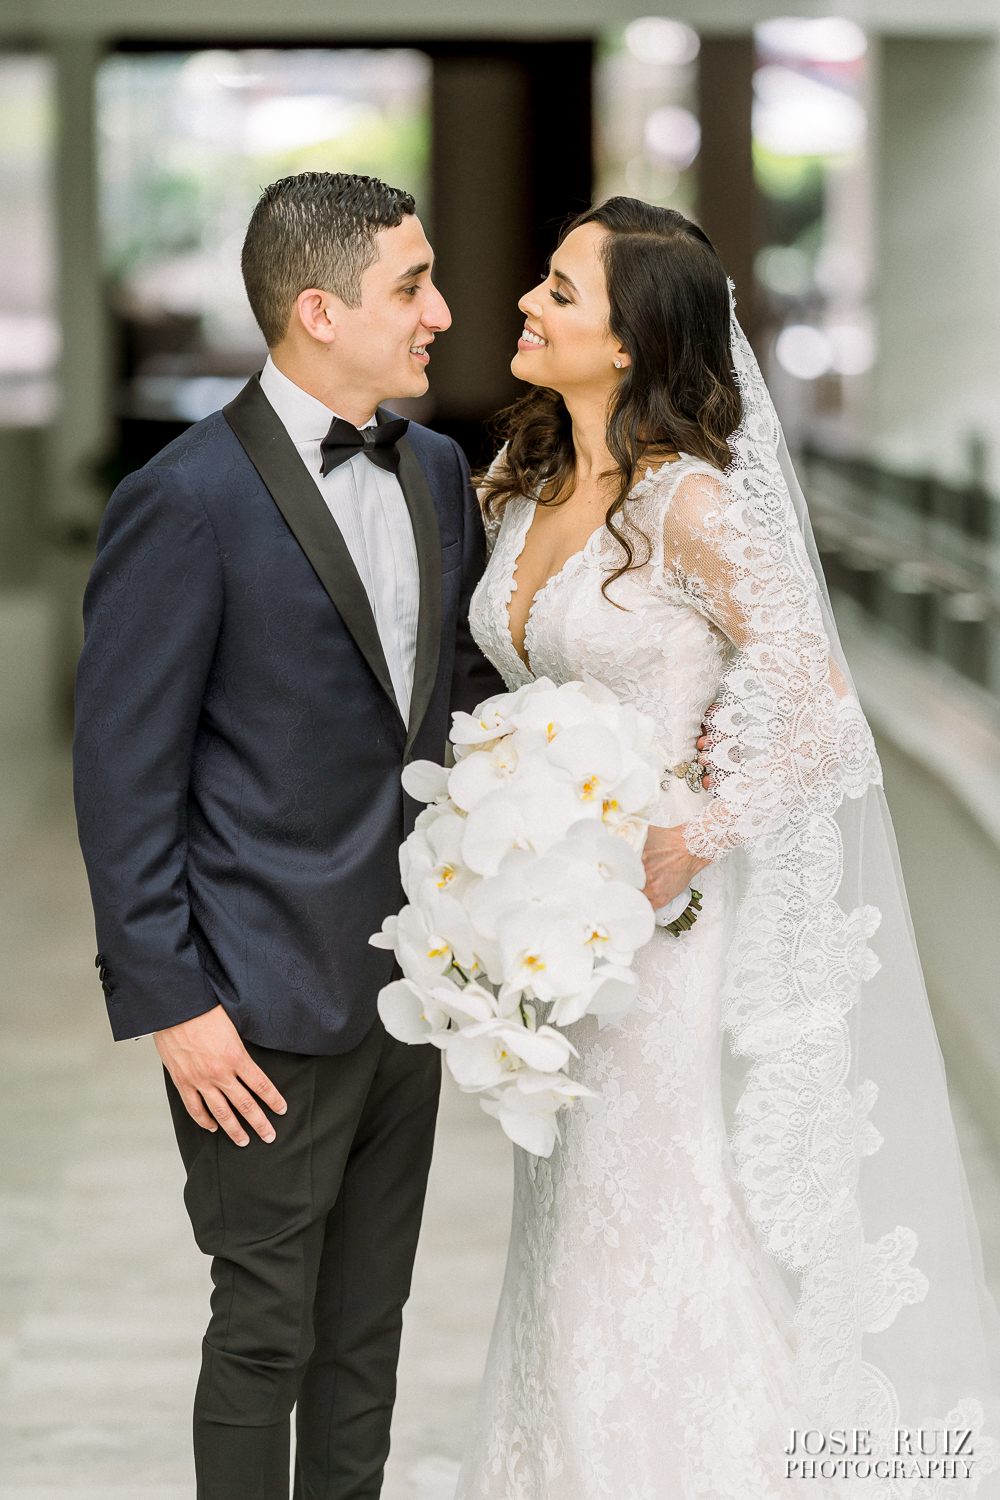 Jose Ruiz Photography- Veronica & Ivan-0097.jpg